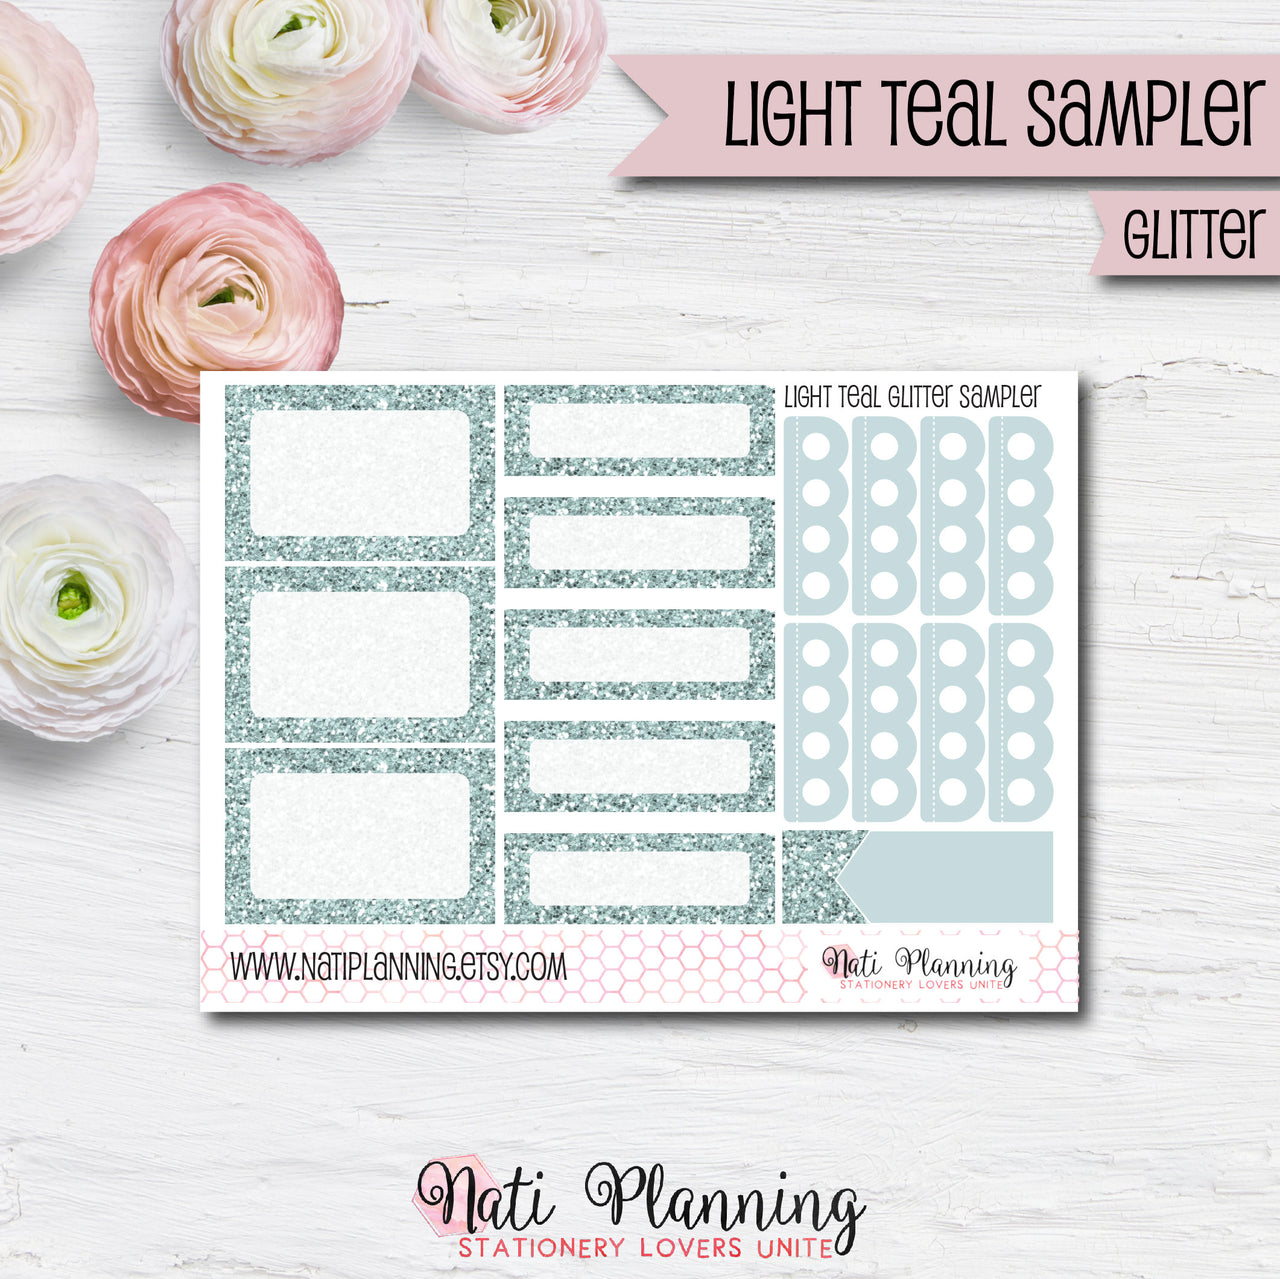 GLITTER SAMPLER - Light Teal